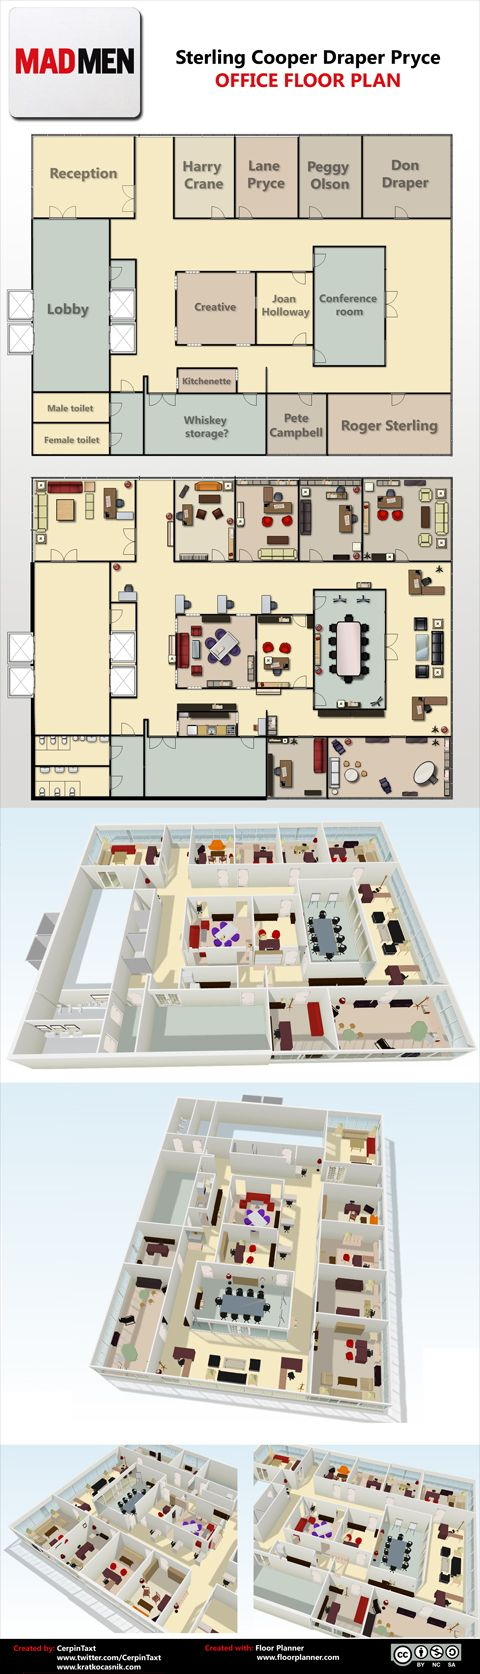 75 best office plan images on Pinterest Architecture Office